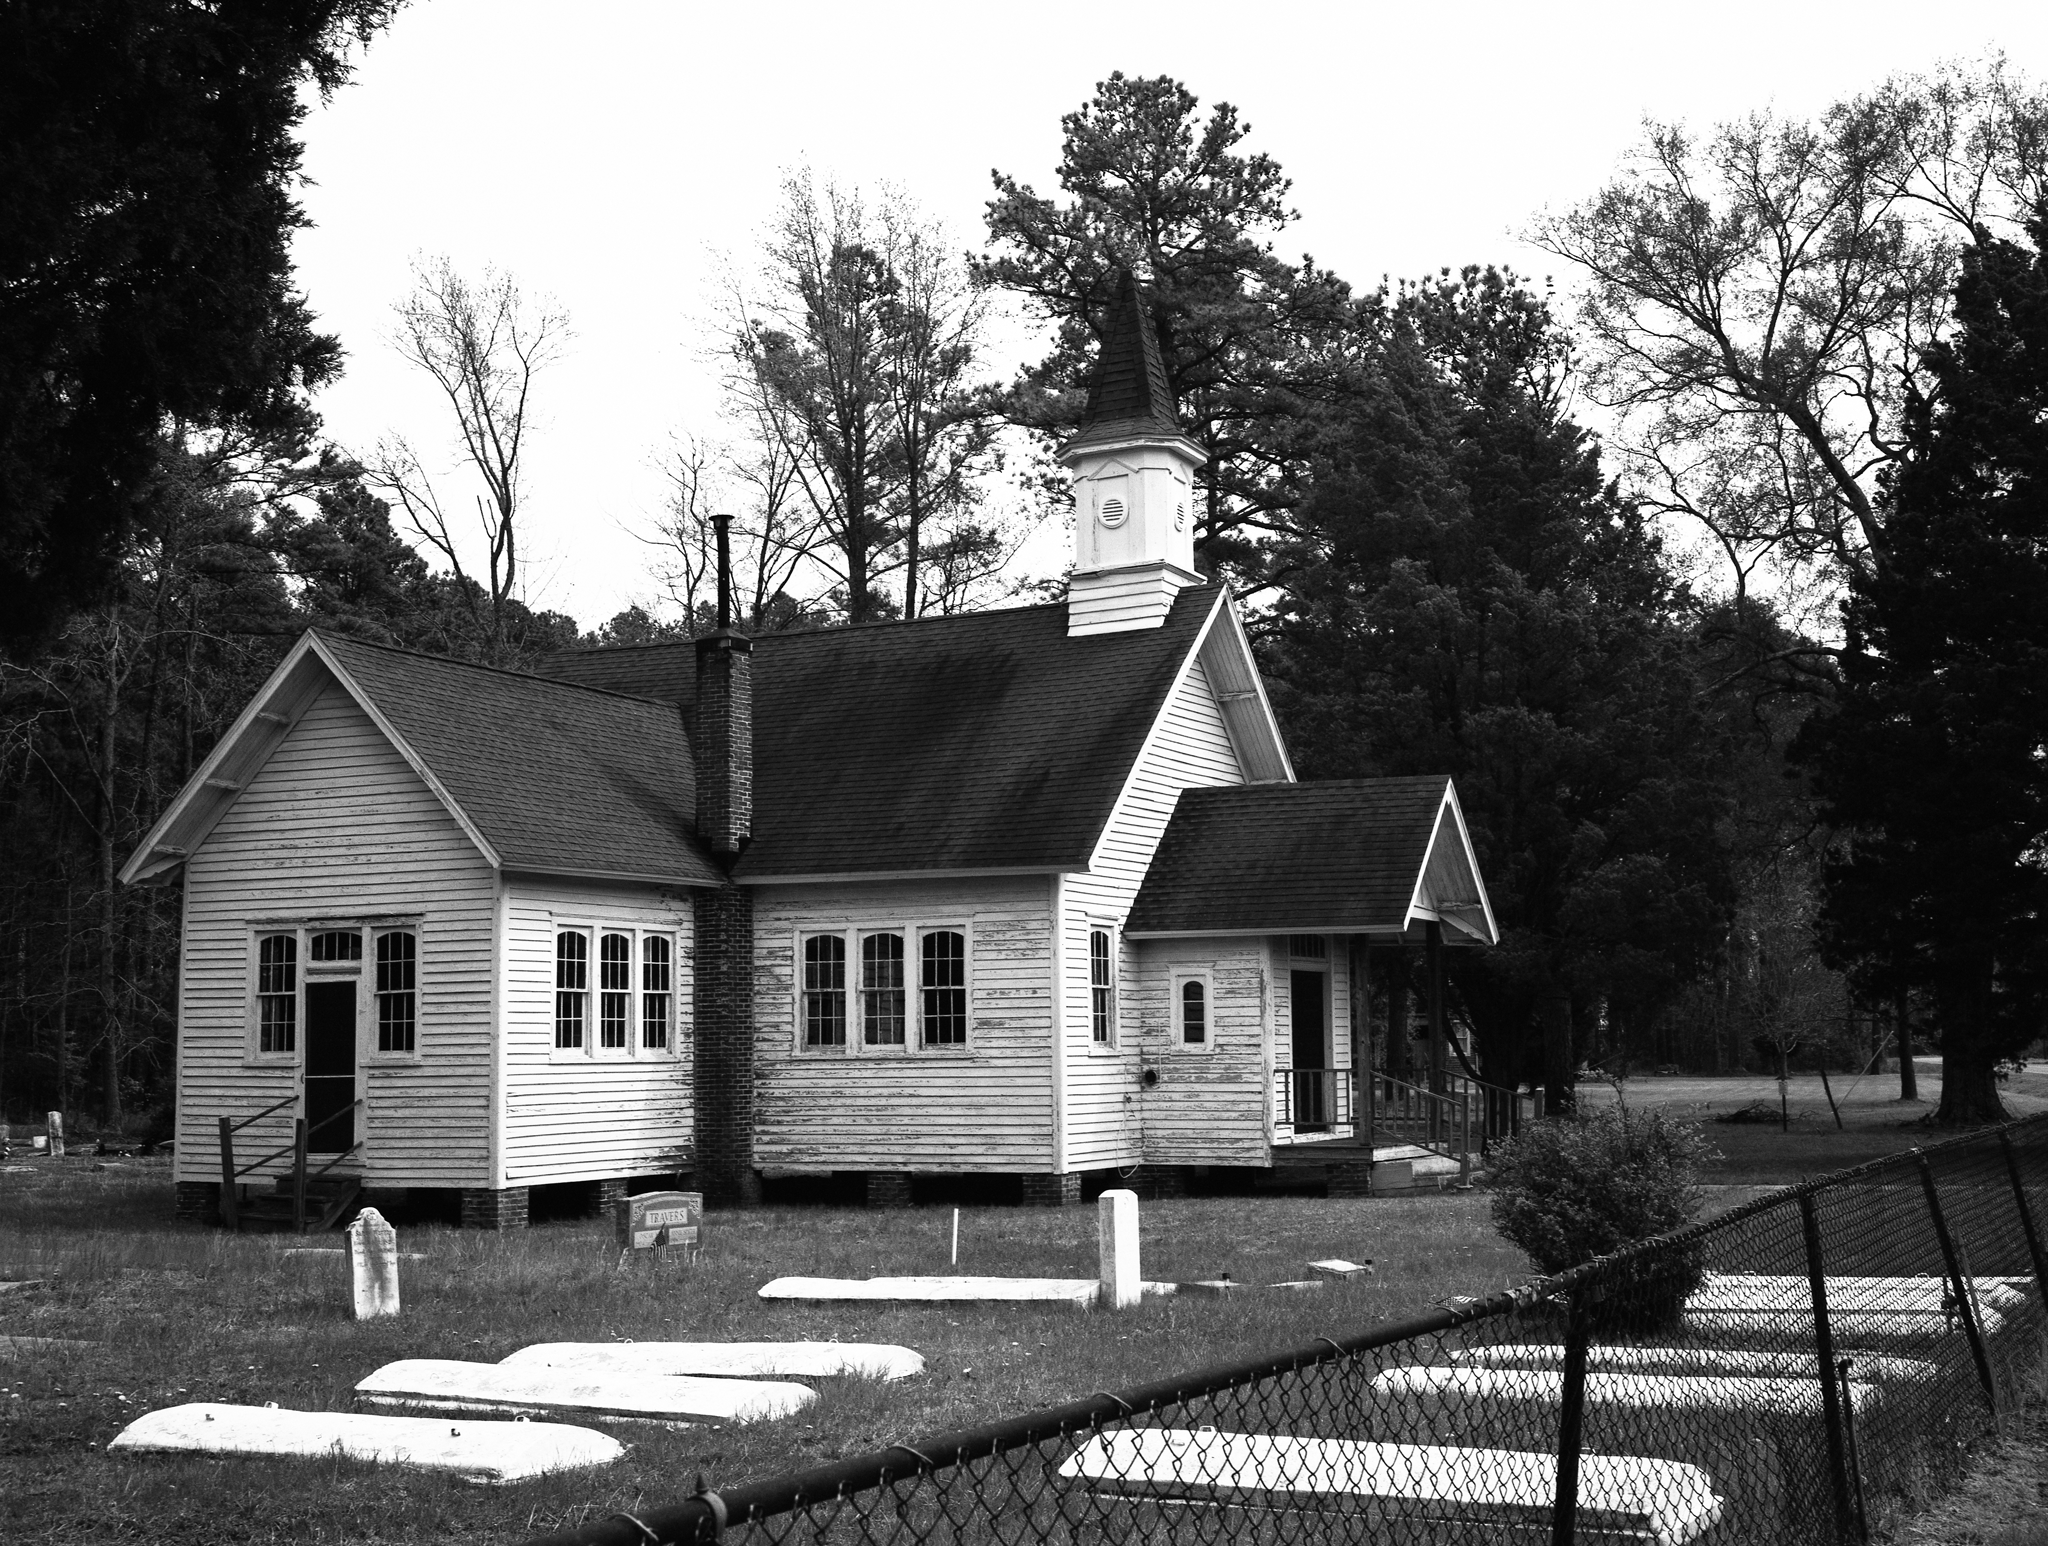 4x5_for_365_project_0116_Church_in_ChurchCreek_MD.png